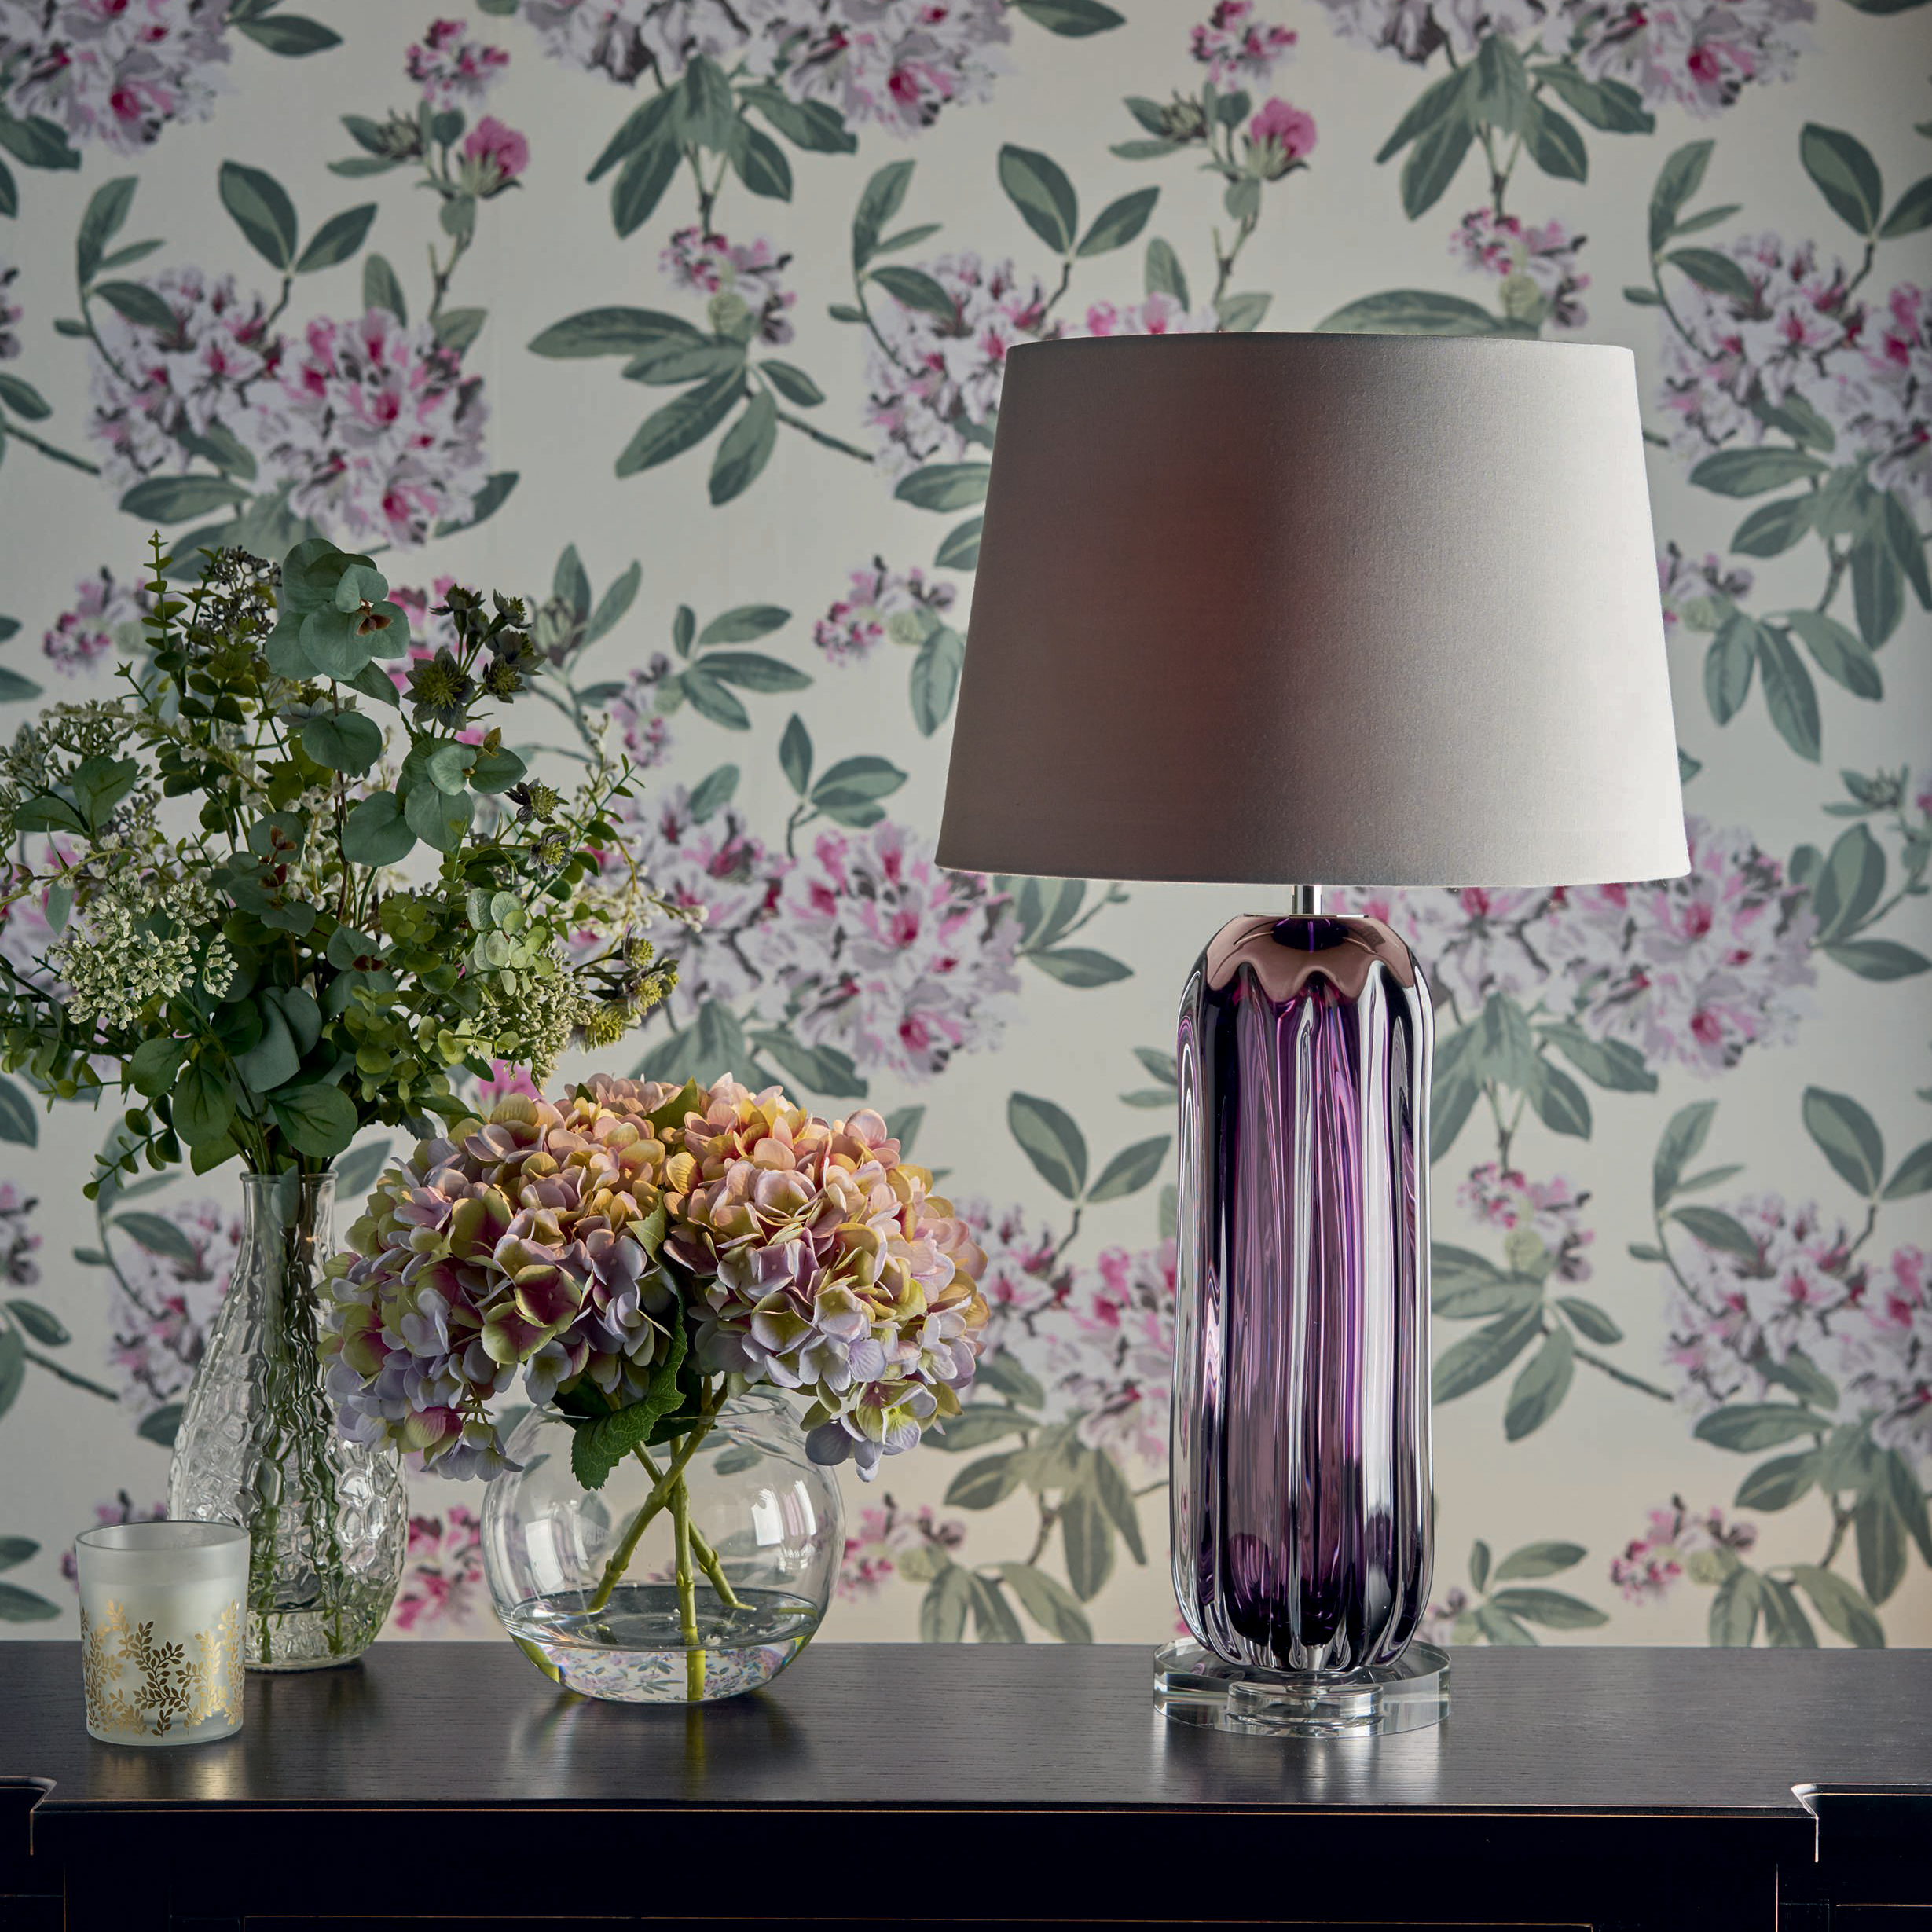 Introducing our Woodland Walk collection